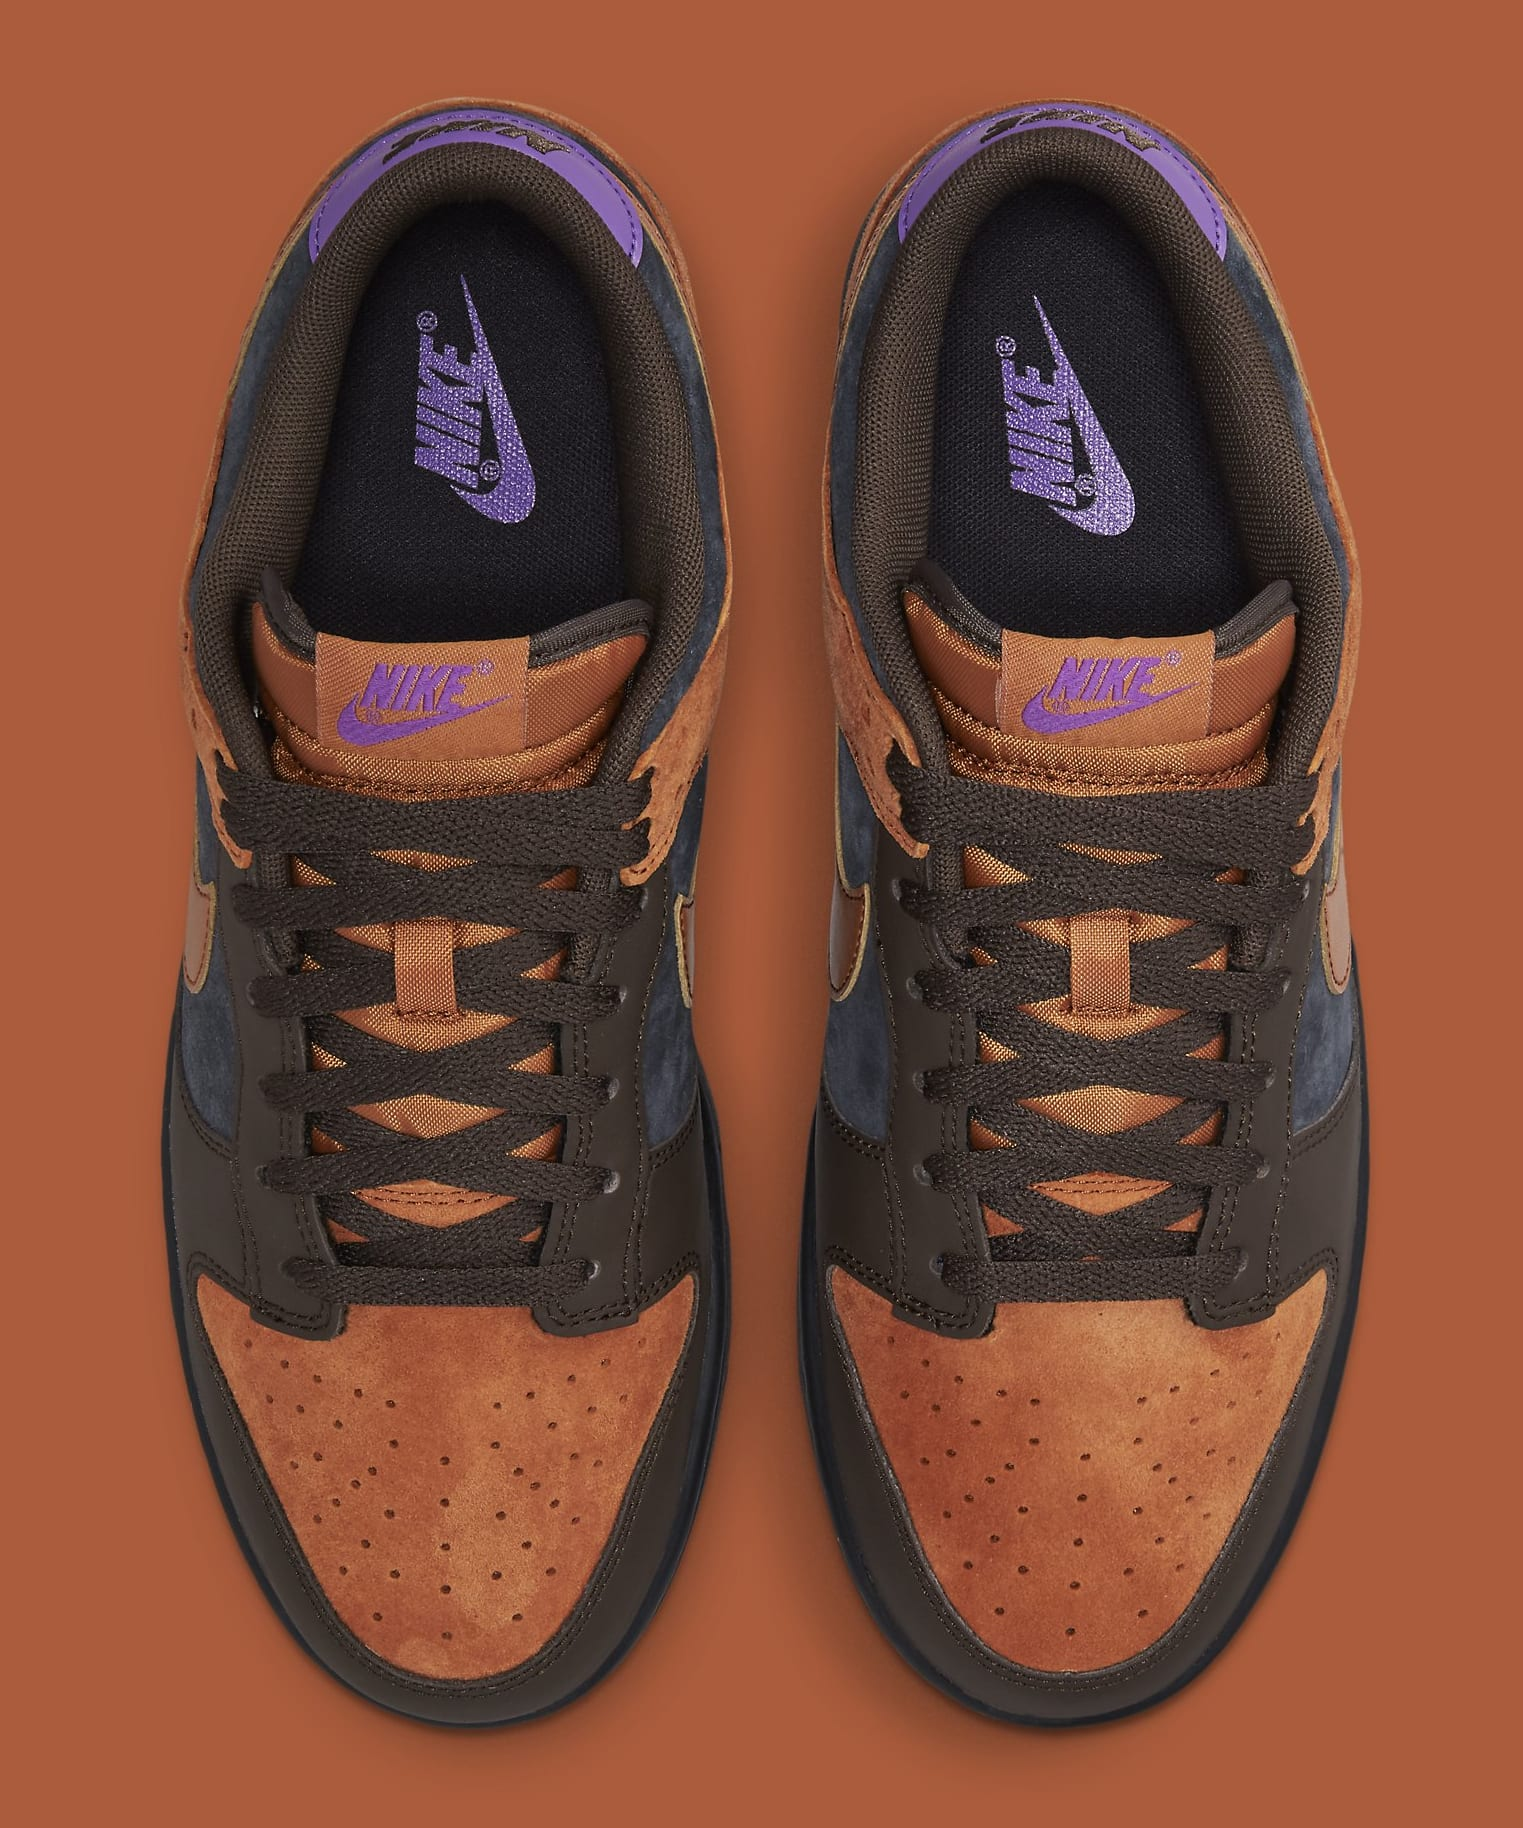 Nike Dunk Low PRM 'Cider' DH0601-001 Top